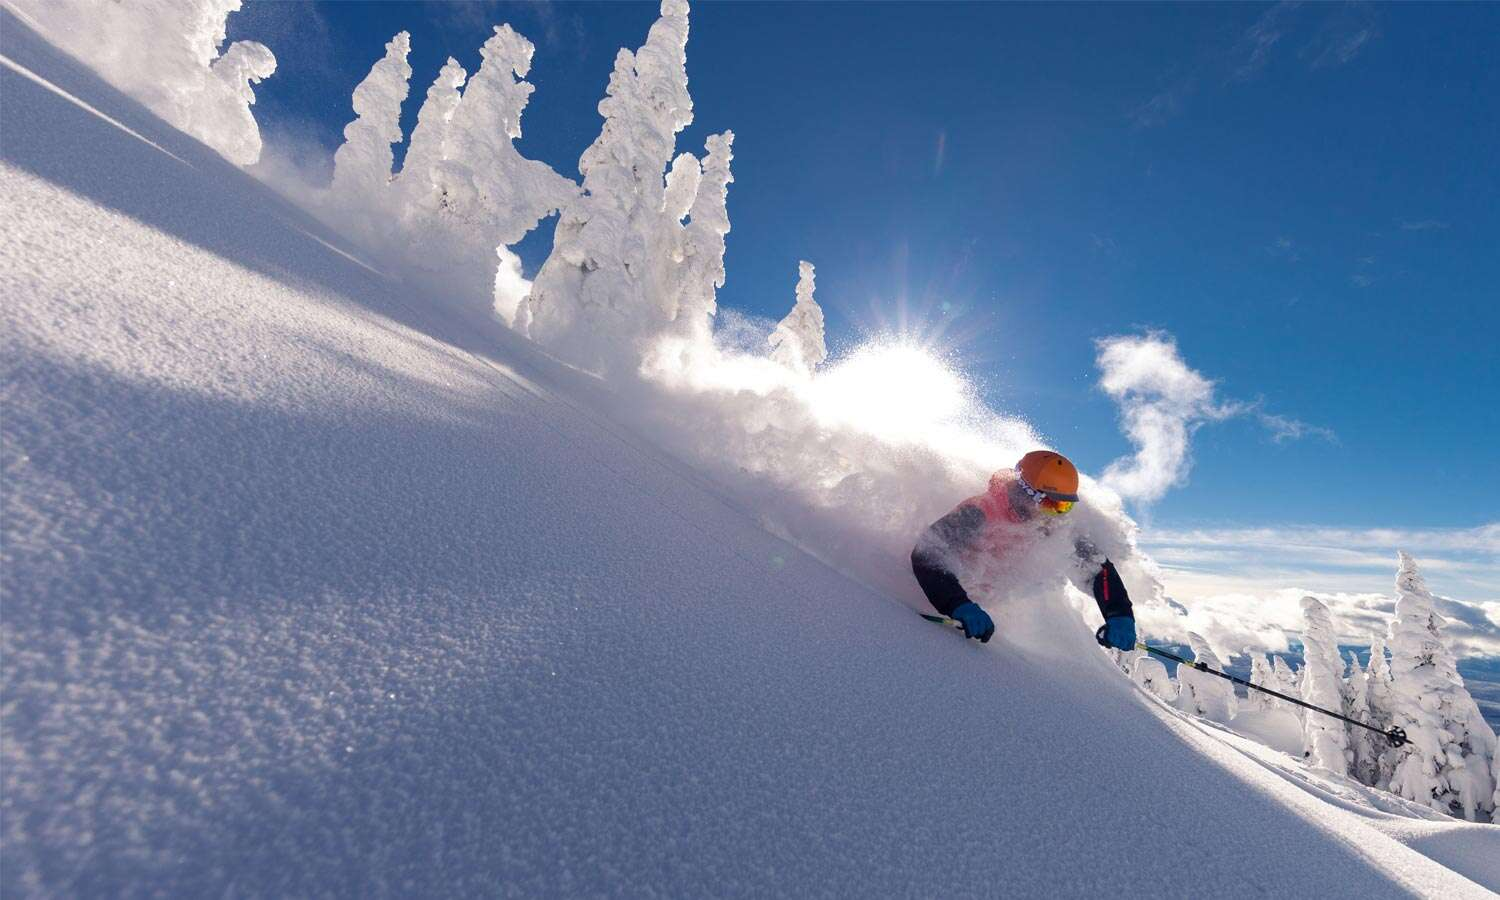 Top 10 Reasons to visit Big White this Winter